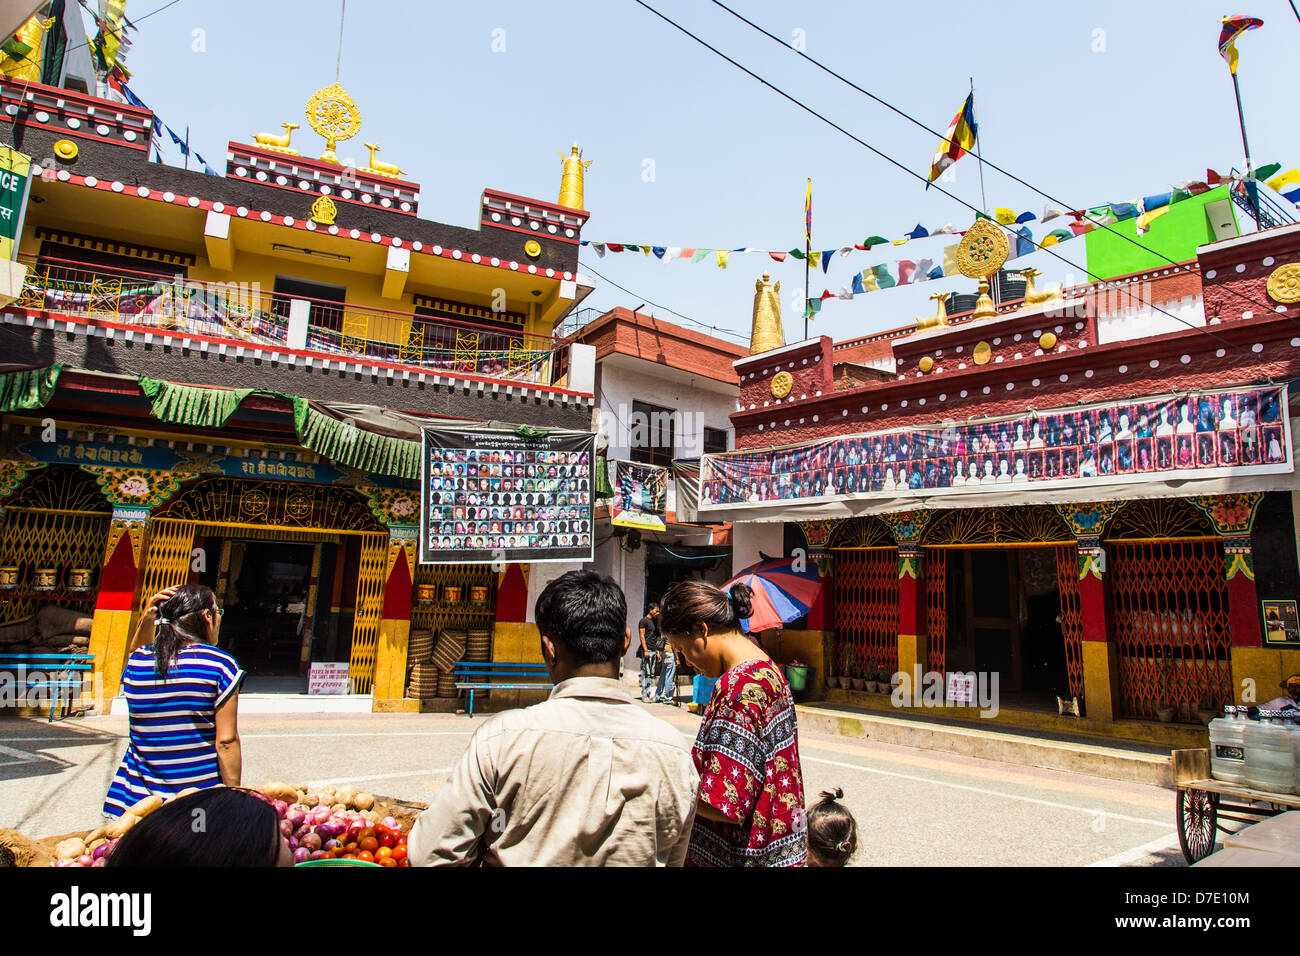 Temple in Majnu-ka-tilla, Tibetan refugee colony in Delhi, India - Stock Image